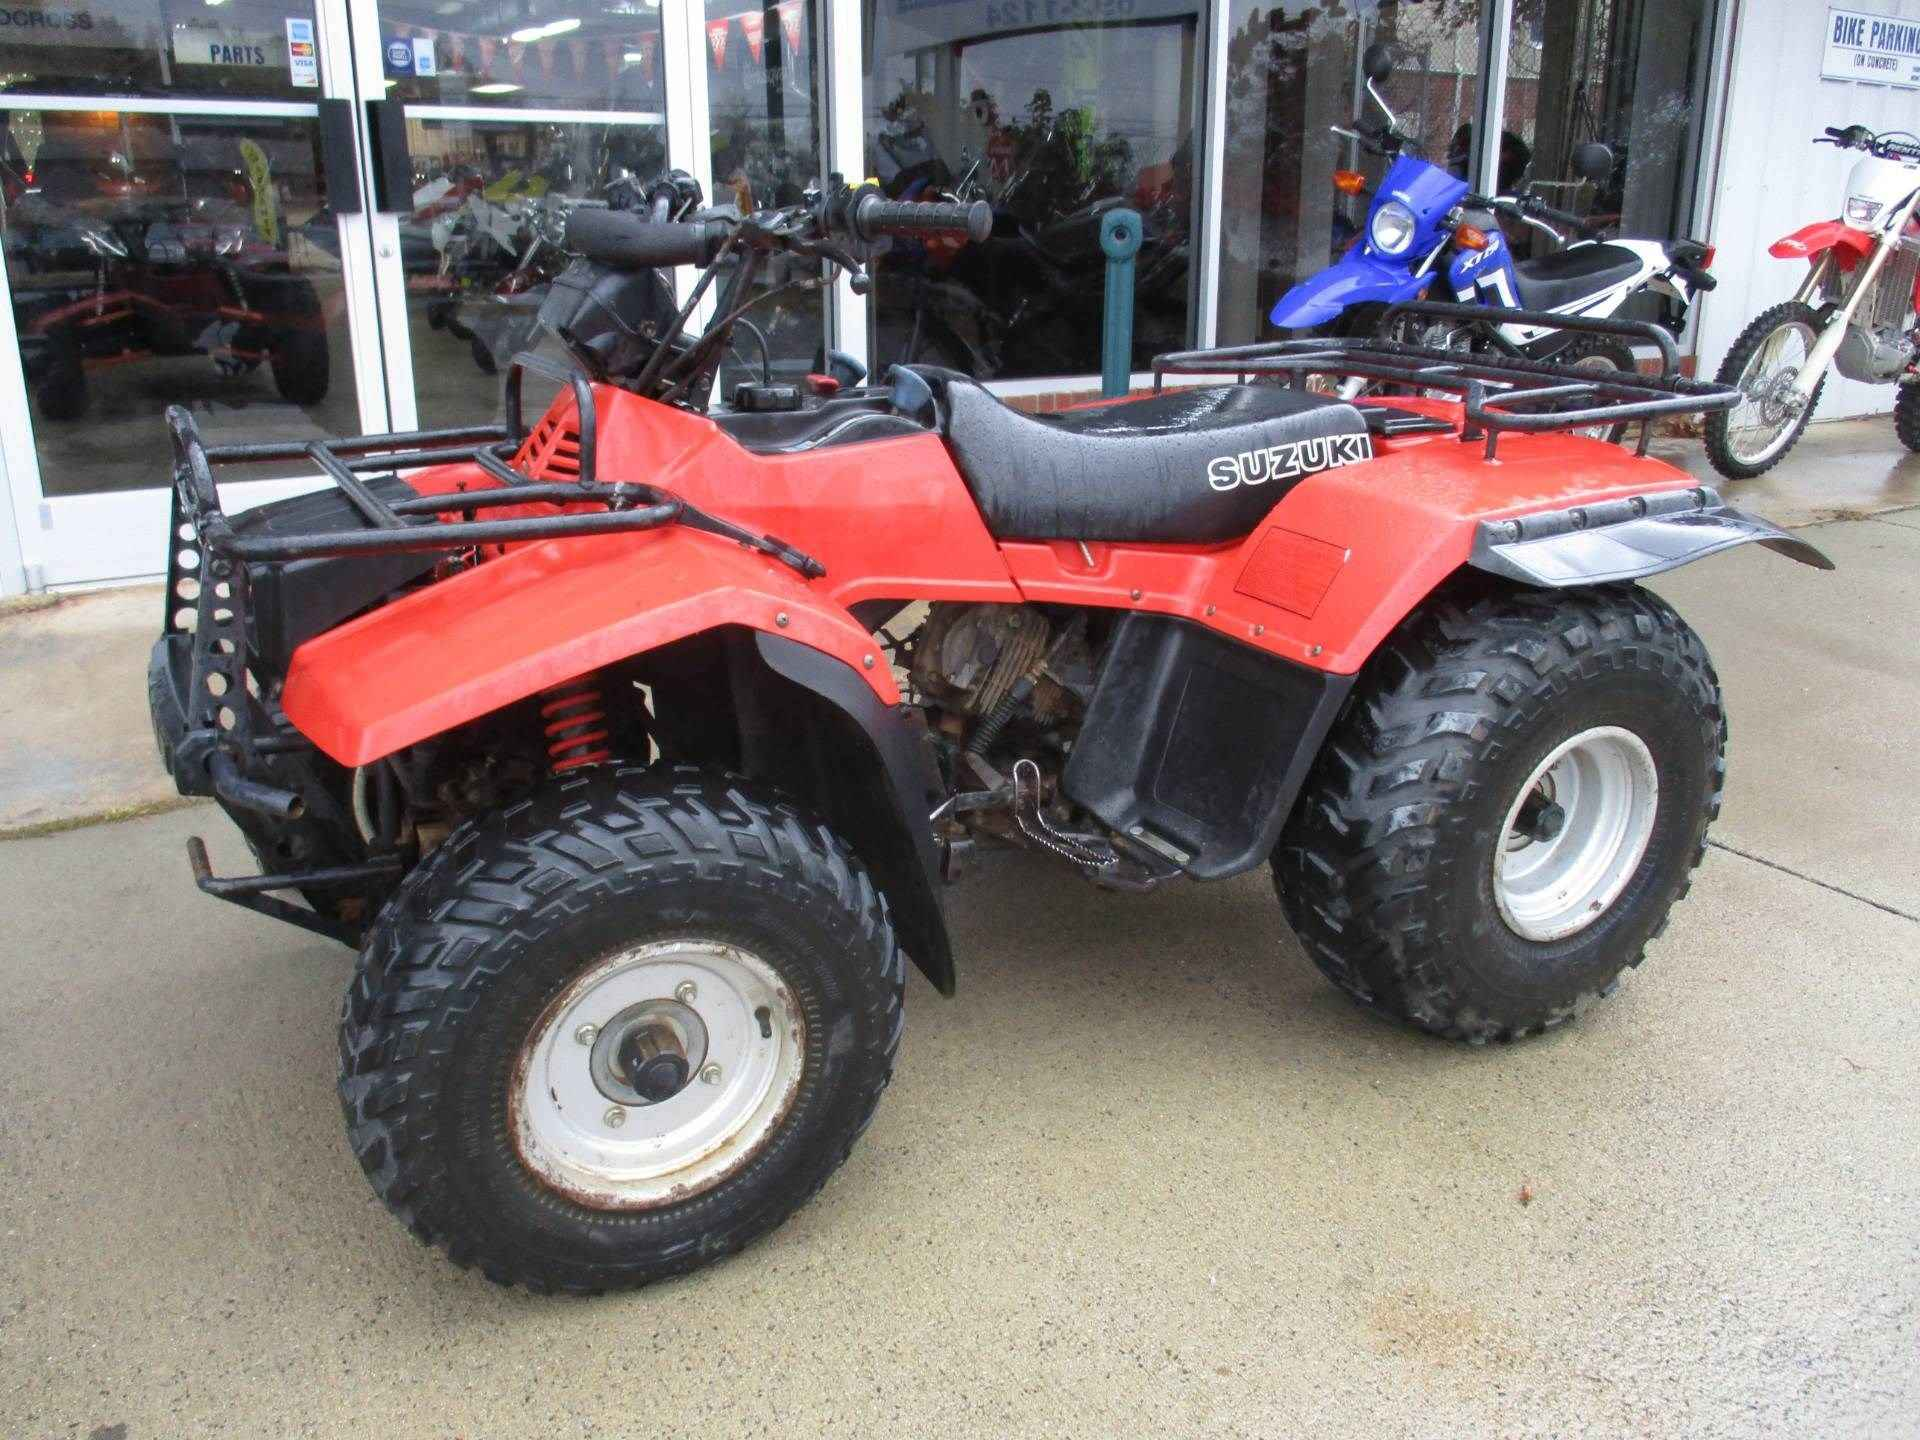 Used 1987 Suzuki QUADRUNNER 250 ATVs For Sale in North ...